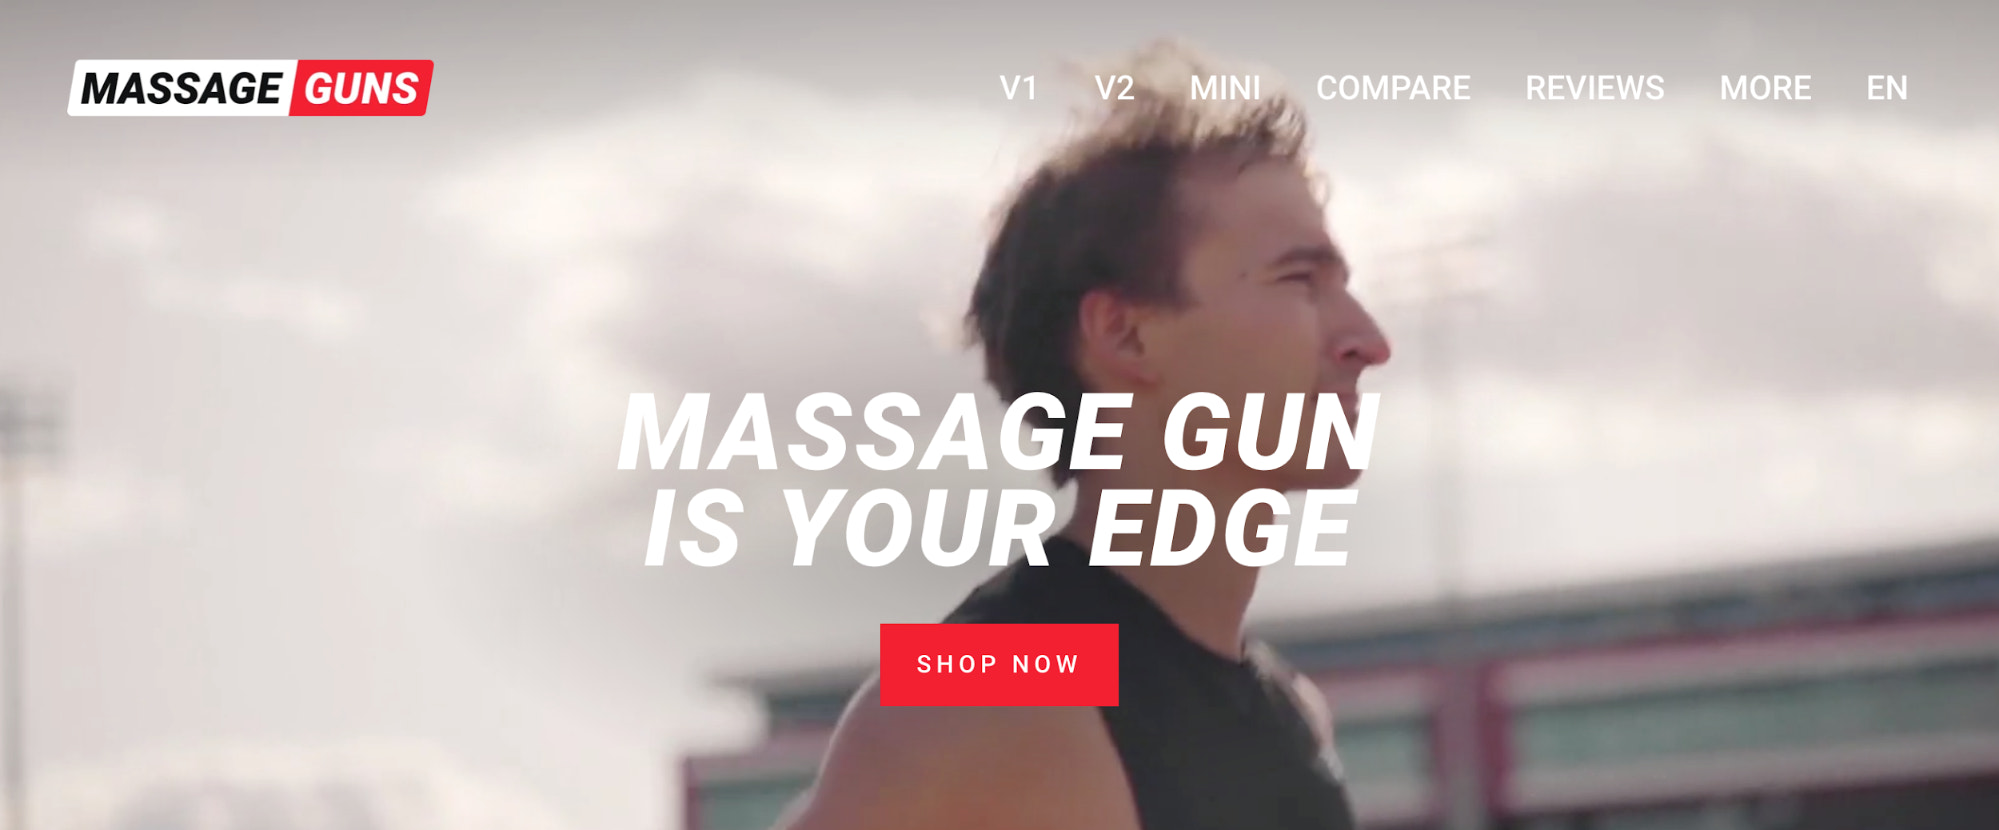 Homepage of Massage Guns, featuring their video which showcases the product